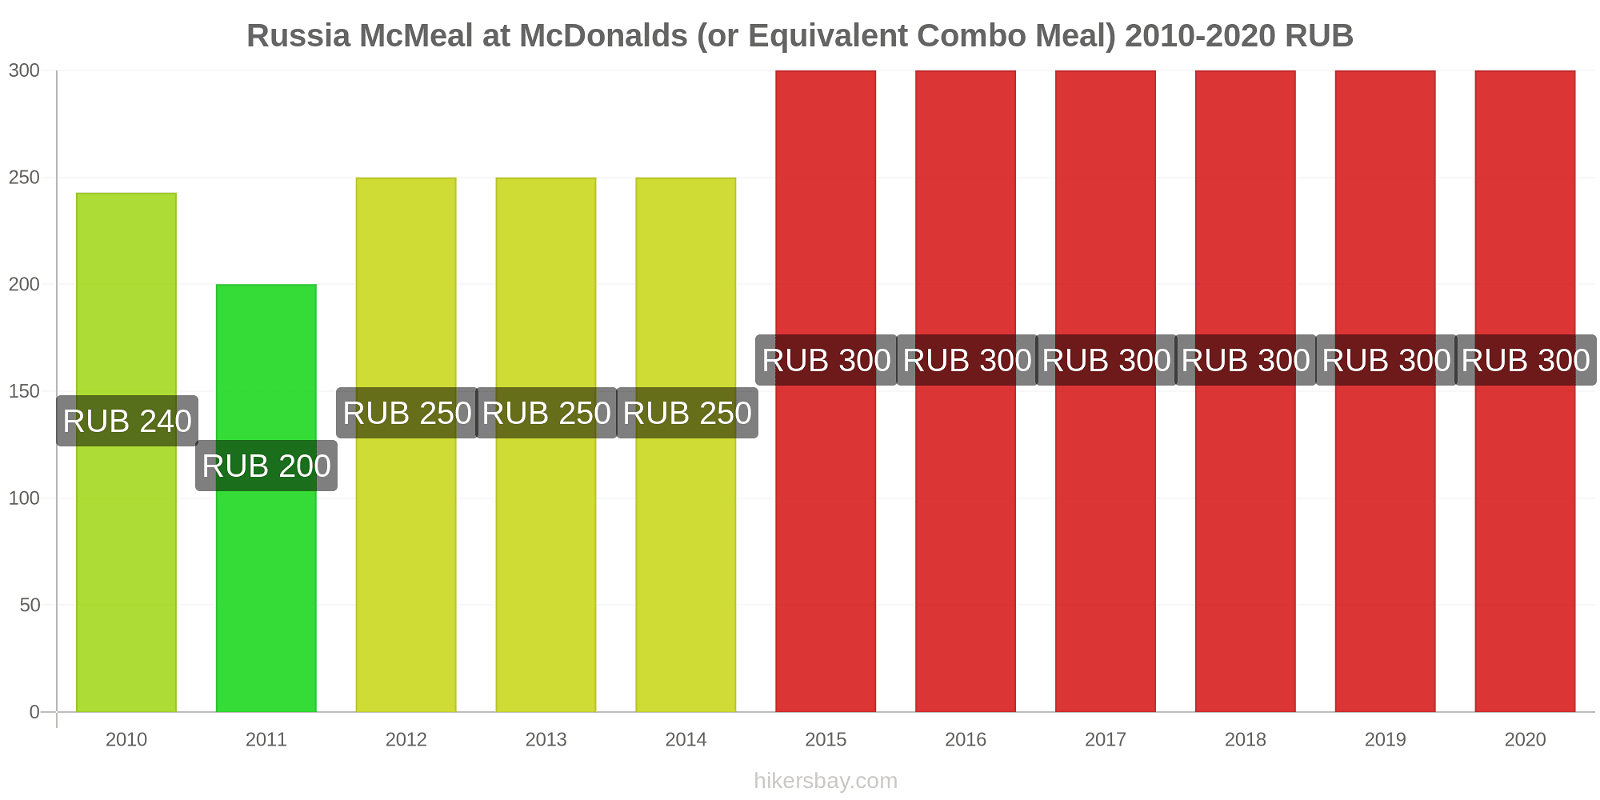 Russia price changes McMeal at McDonalds (or Equivalent Combo Meal) hikersbay.com